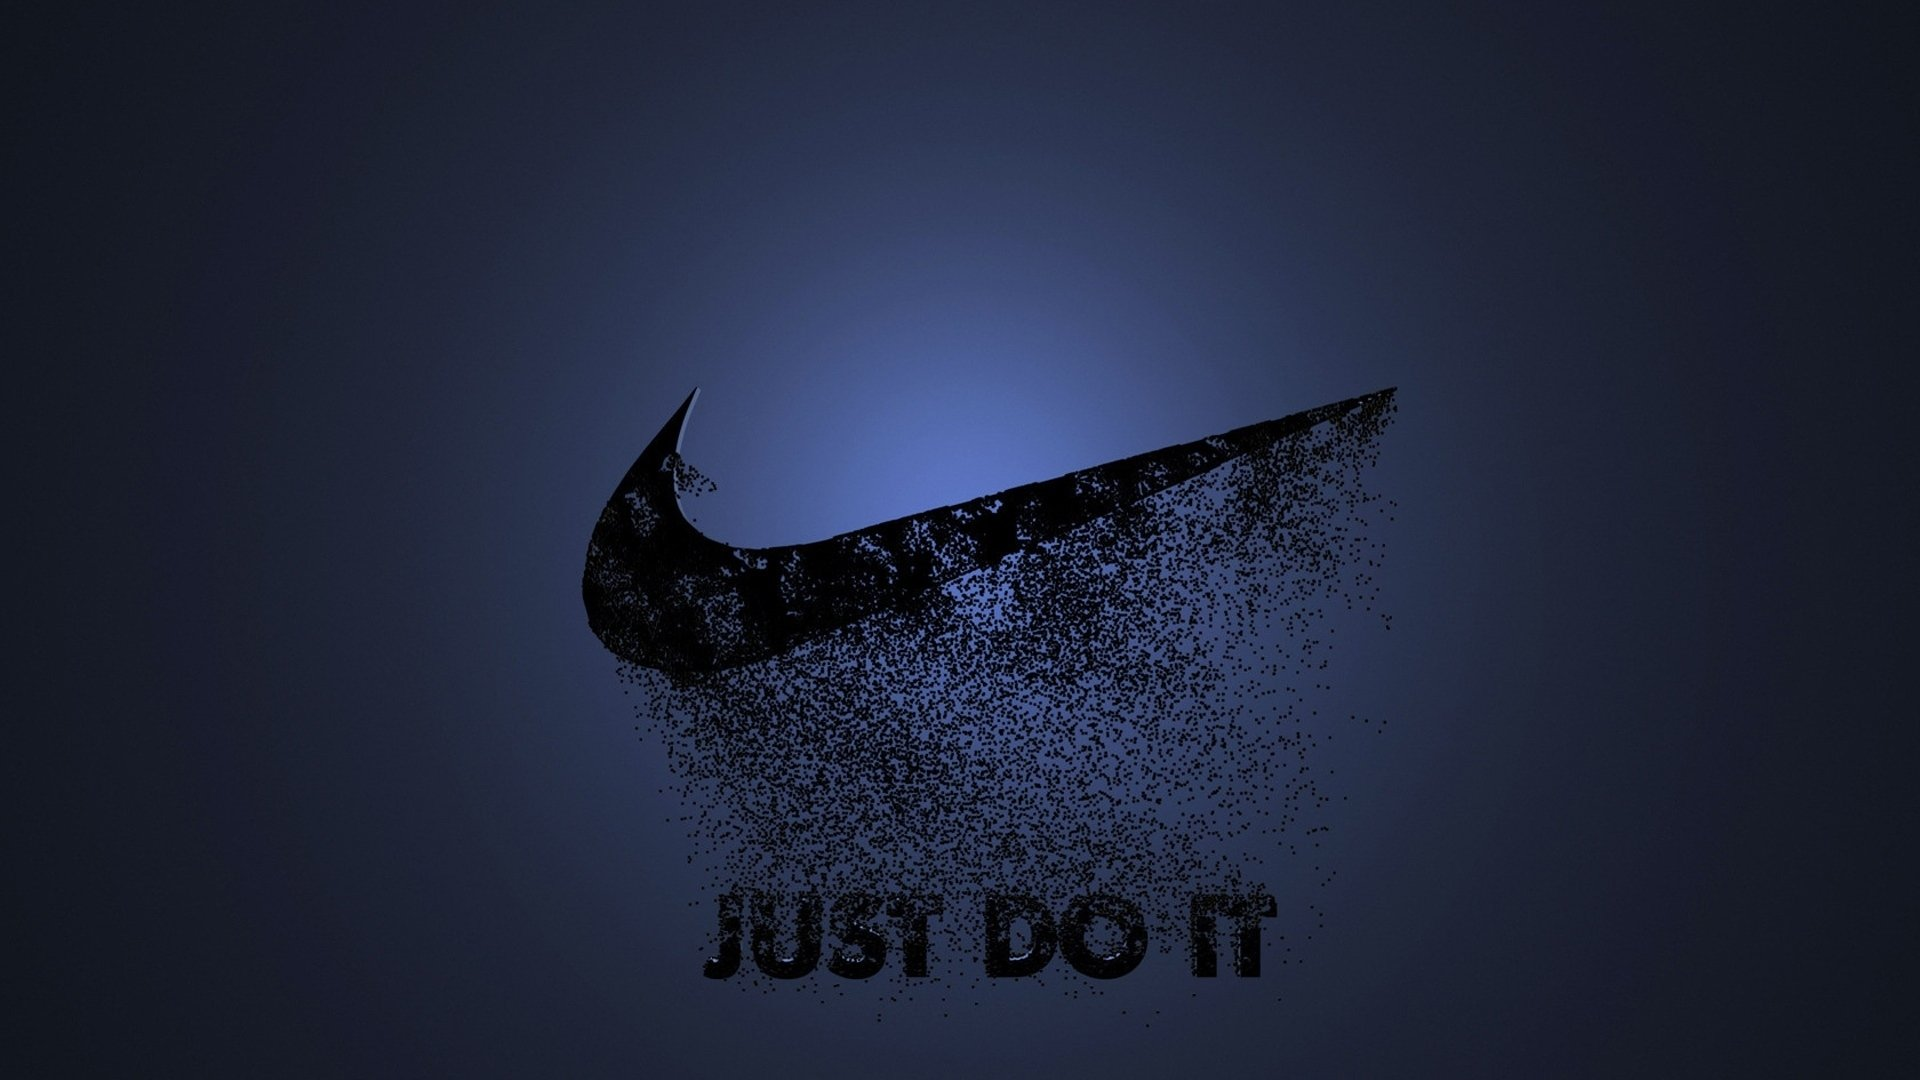 63 Nike HD Wallpapers | Backgrounds - Wallpaper Abyss